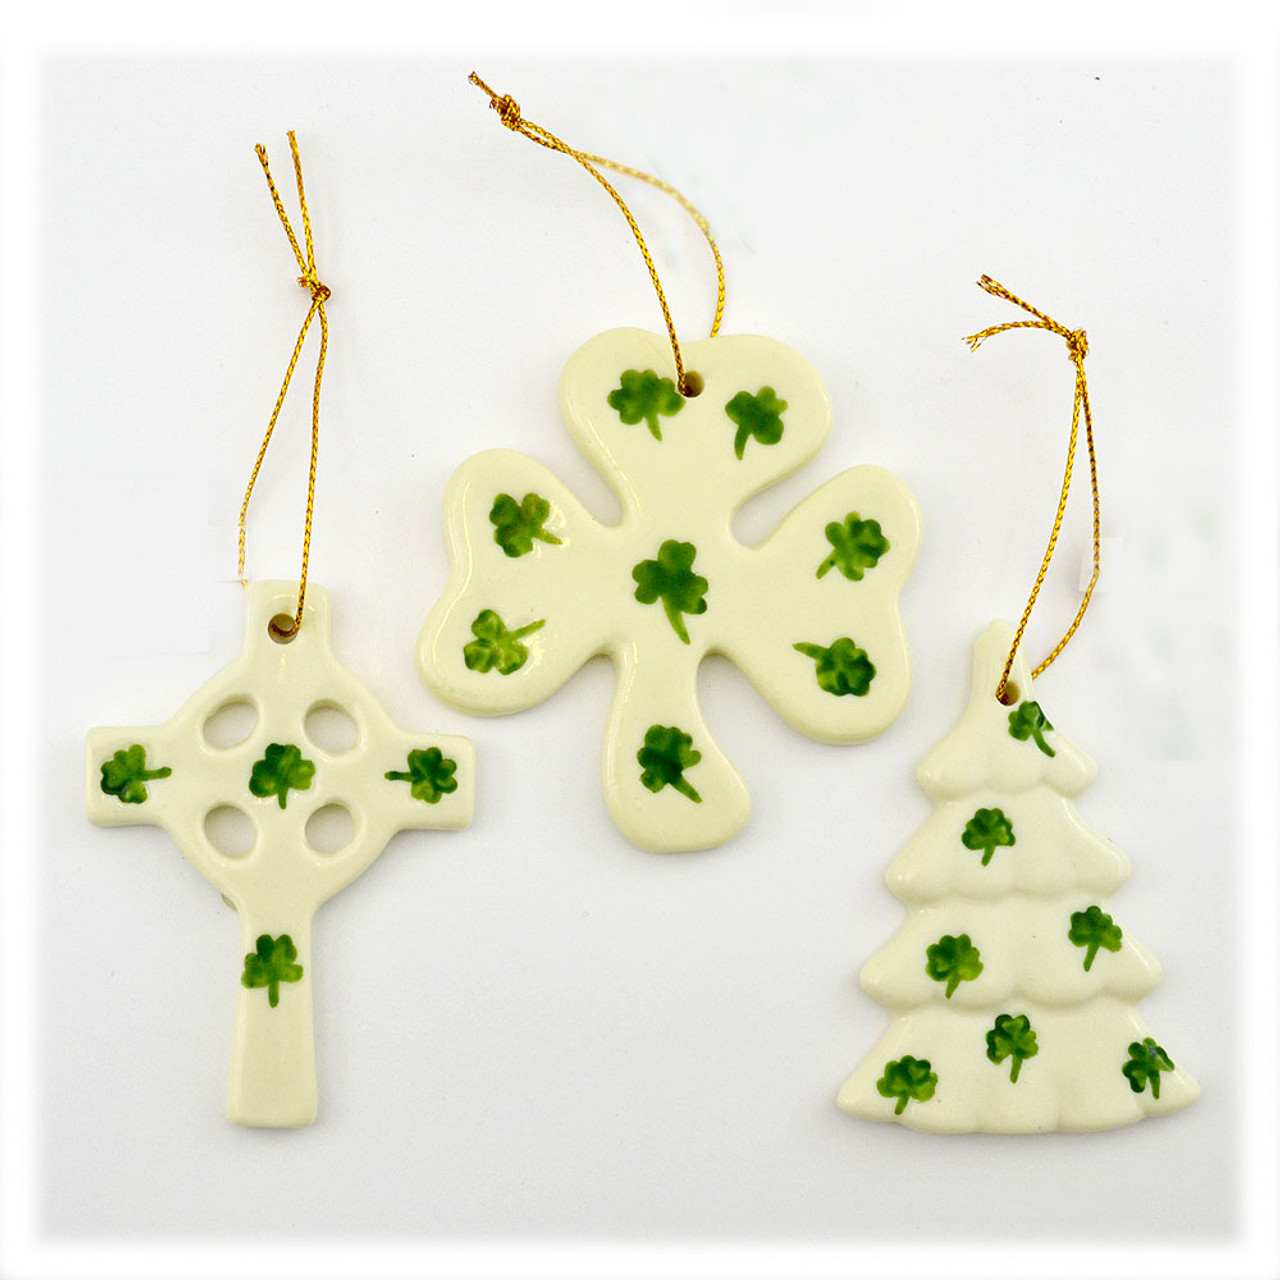 3 Styles of ceramic Irish Ornaments: Celtic cross, Shamrock, and Christmas tree each sold separately